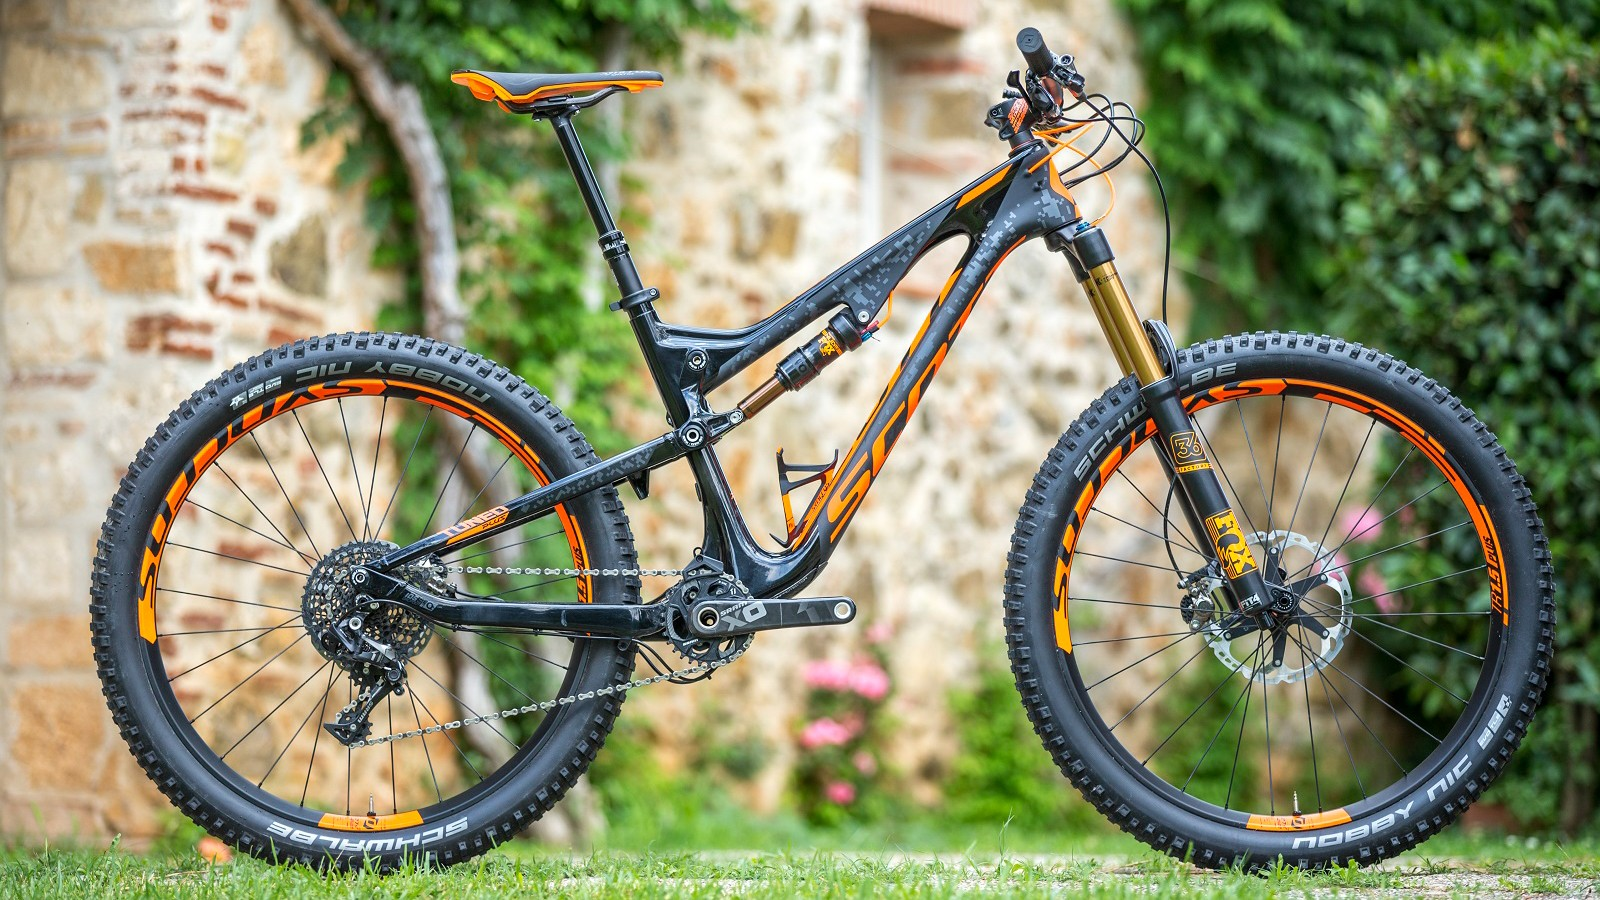 Scott's longer travel Genius LT 700 Tuned Plus offers up 160mm of travel at the front and rear